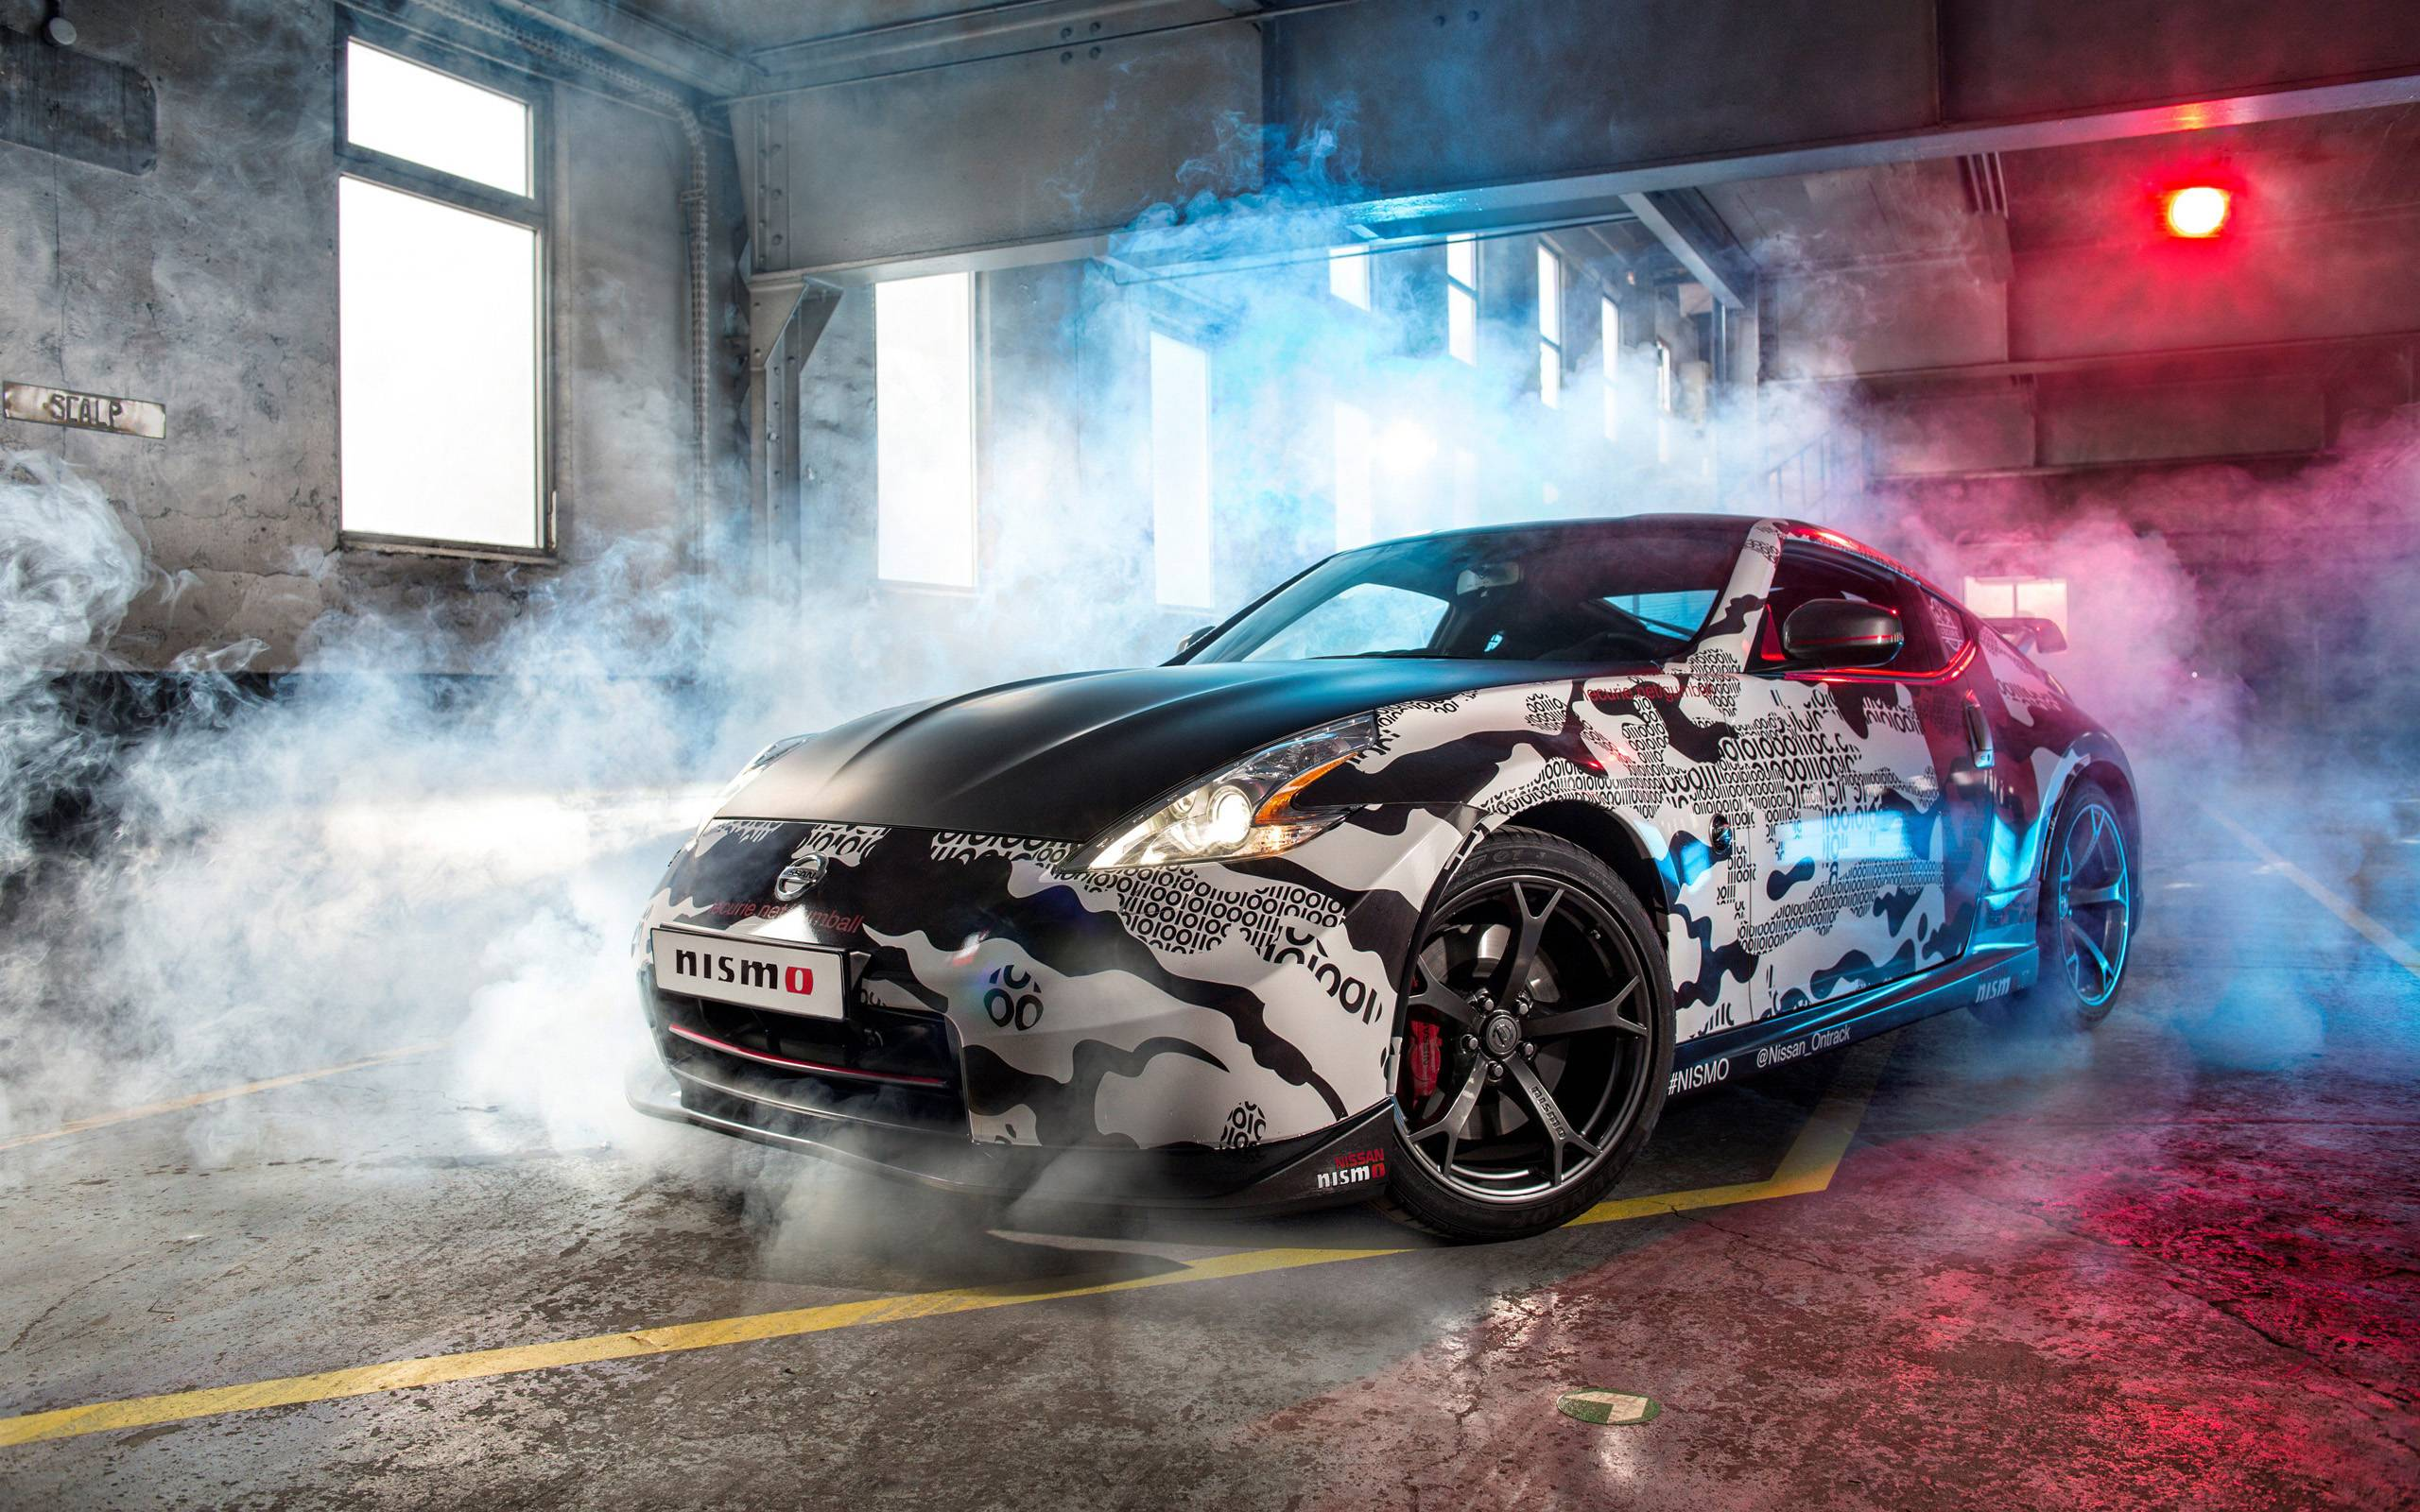 370z nismo wallpapers wallpaper cave nissan 370z nismo gumball 3000 rally 2013 wallpapers hd wallpapers vanachro Choice Image